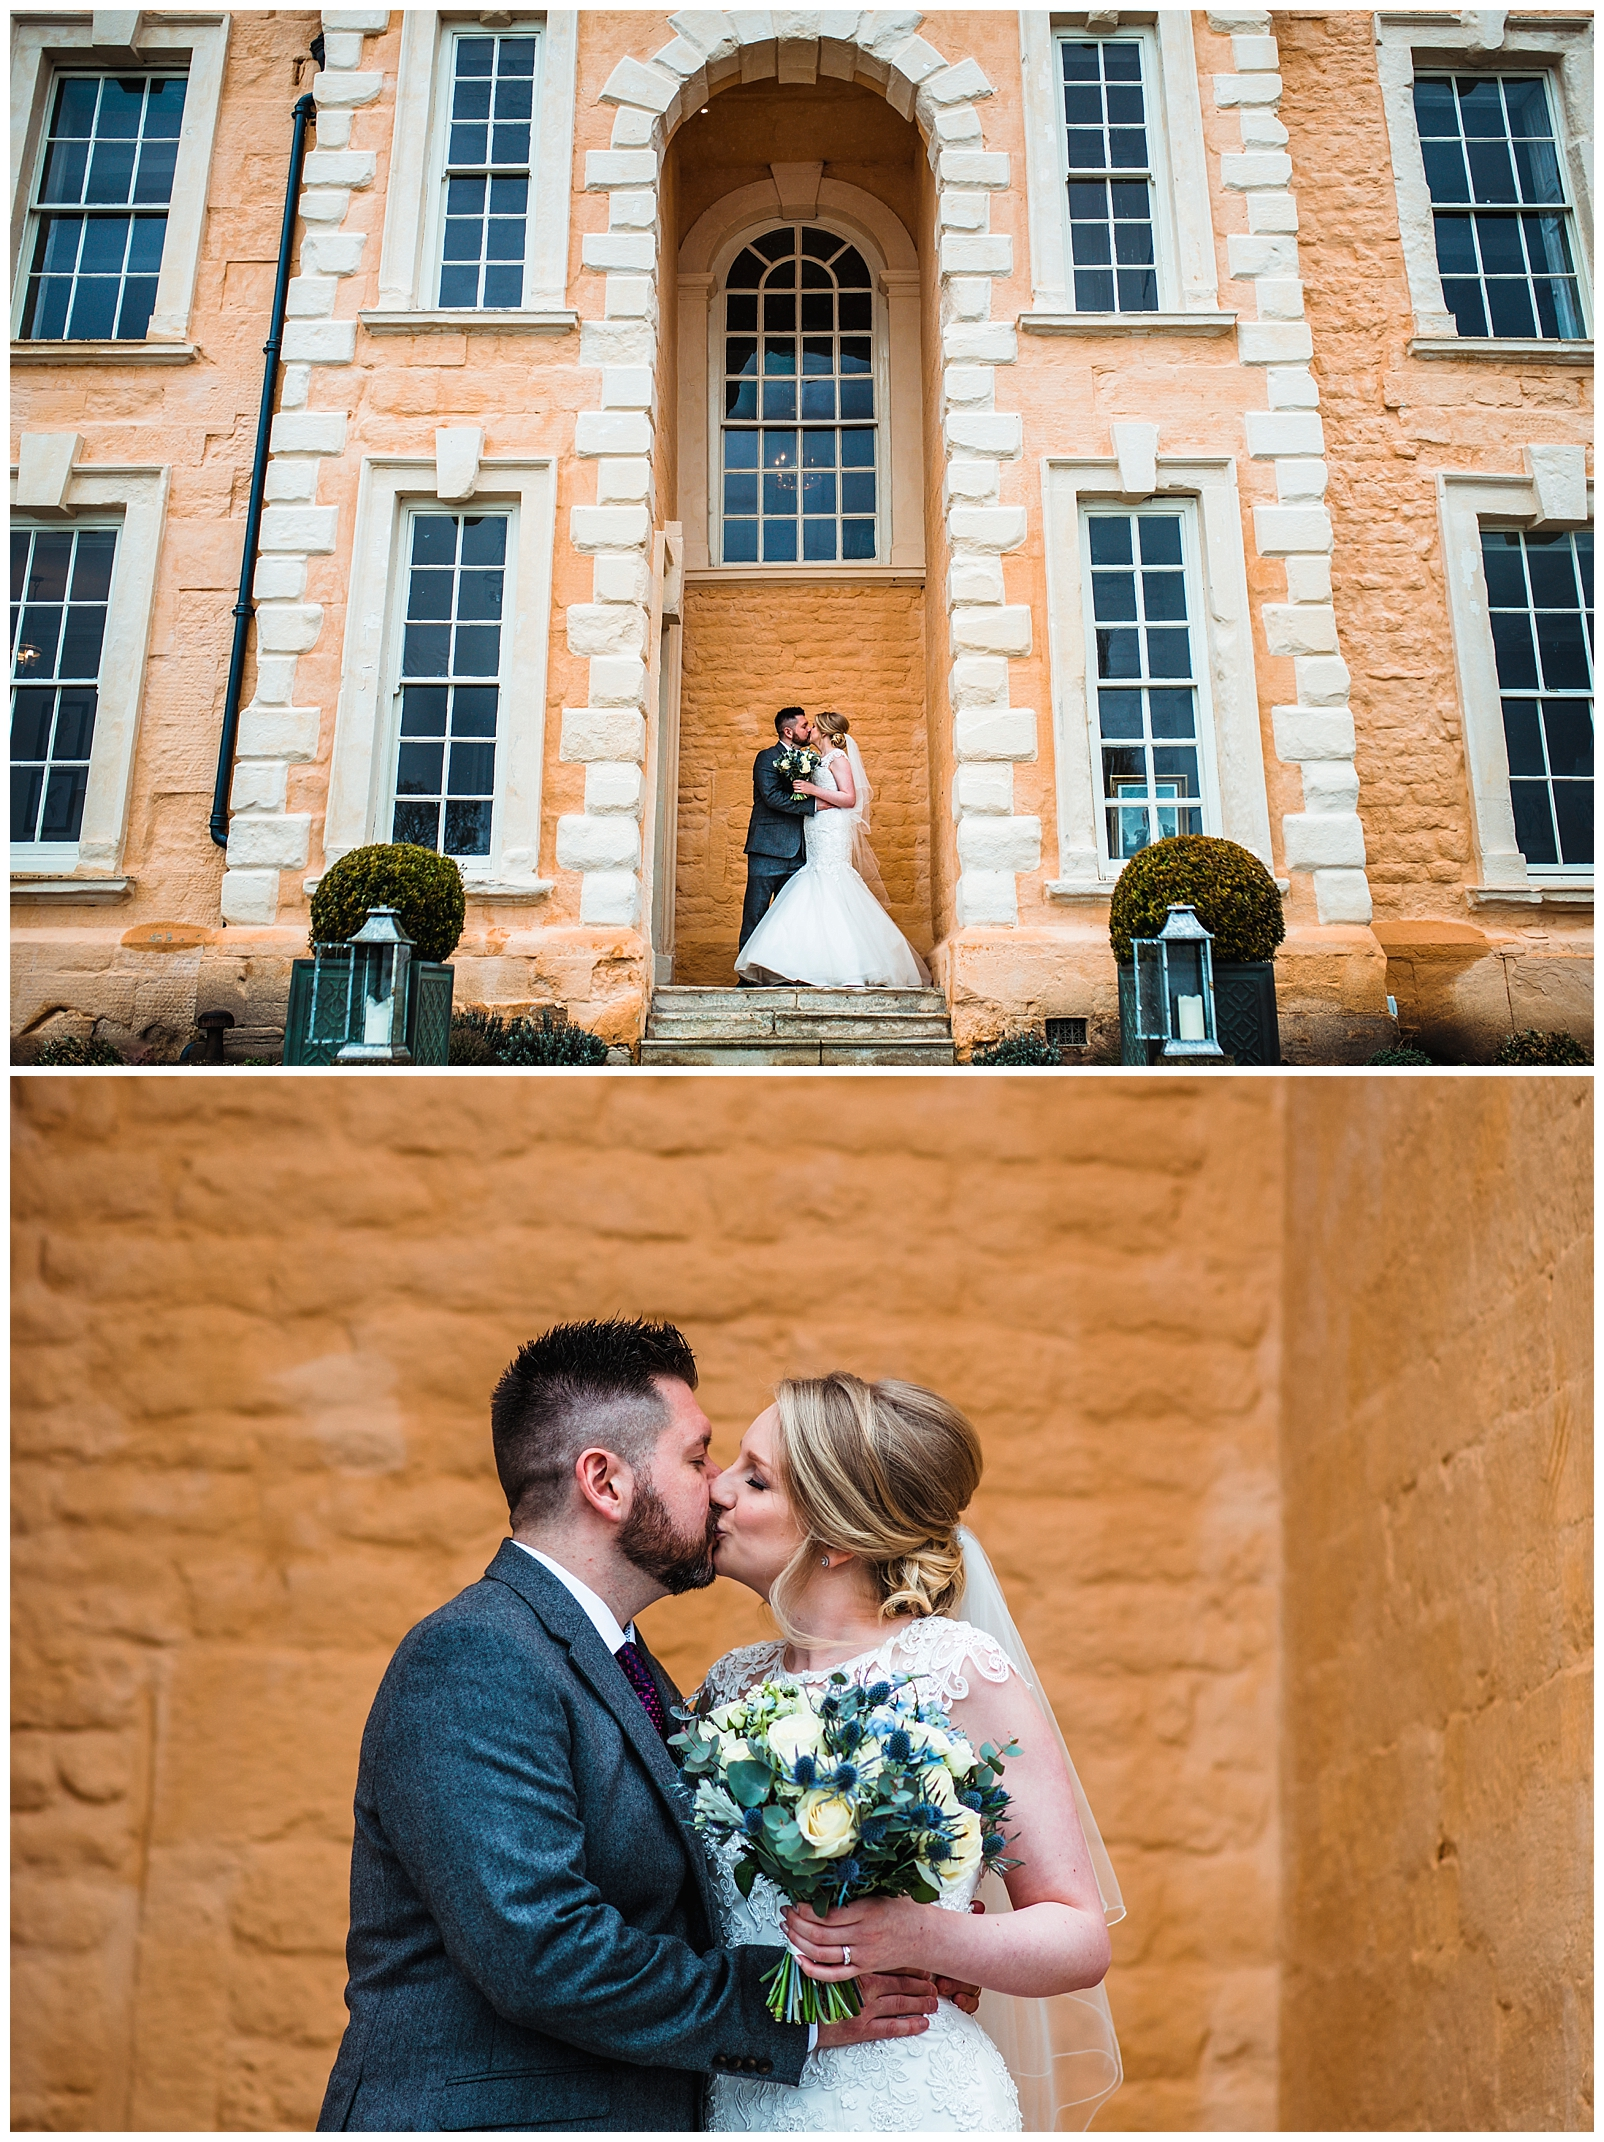 York House wedding photo in Malton